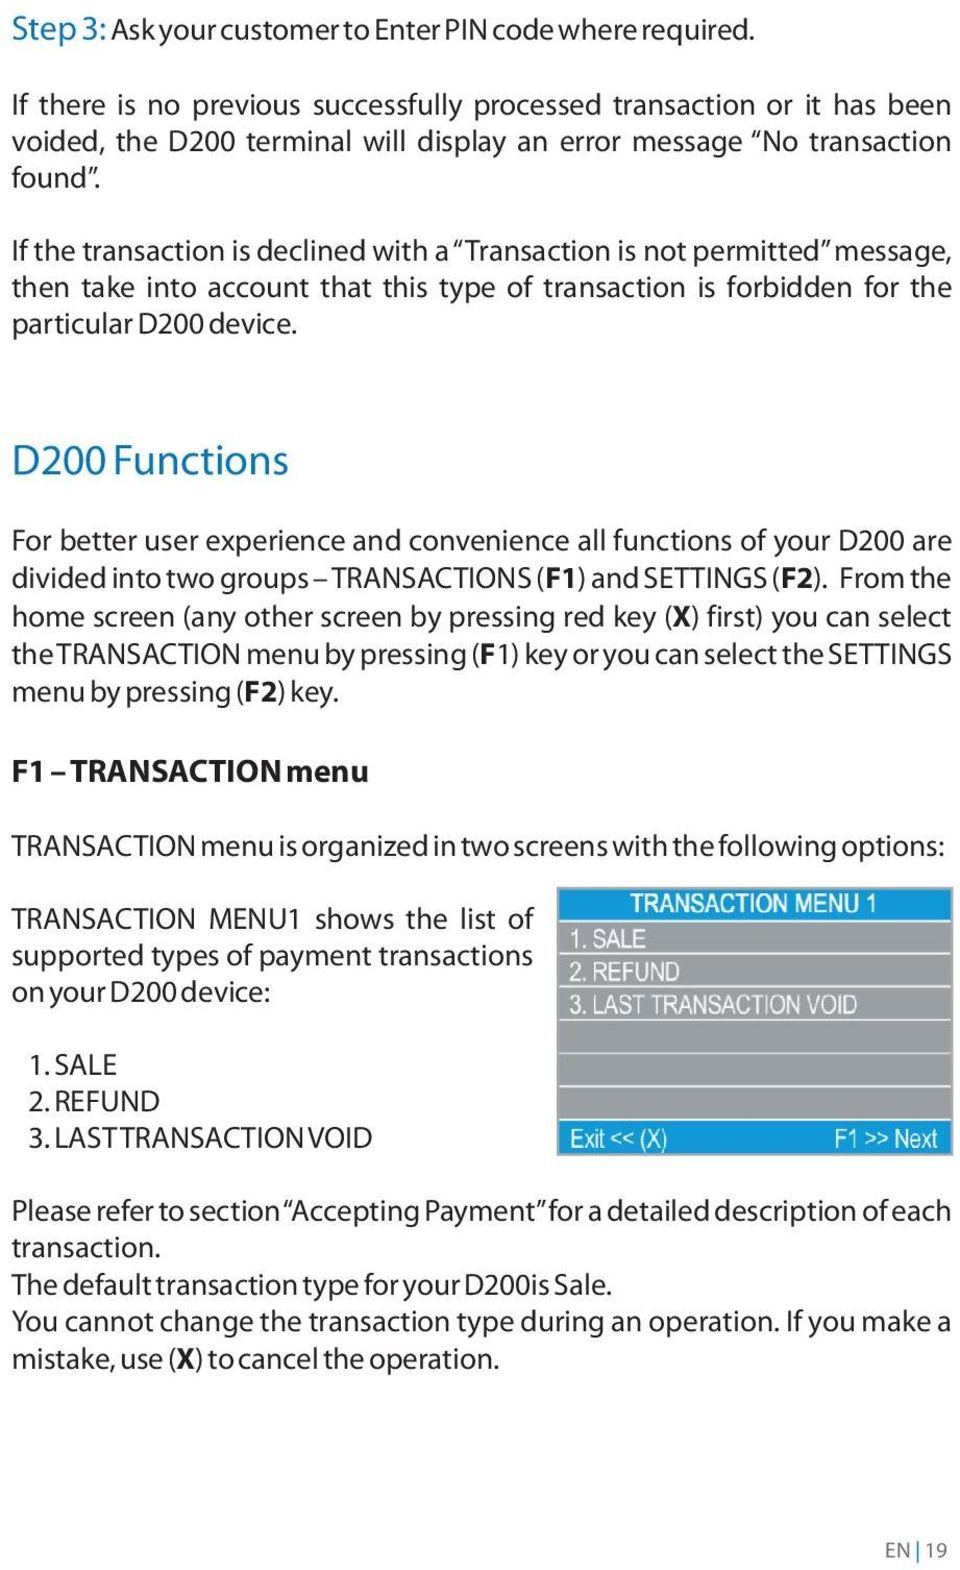 If the transaction is declined with a Transaction is not permitted message, then take into account that this type of transaction is forbidden for the particular D200 device.